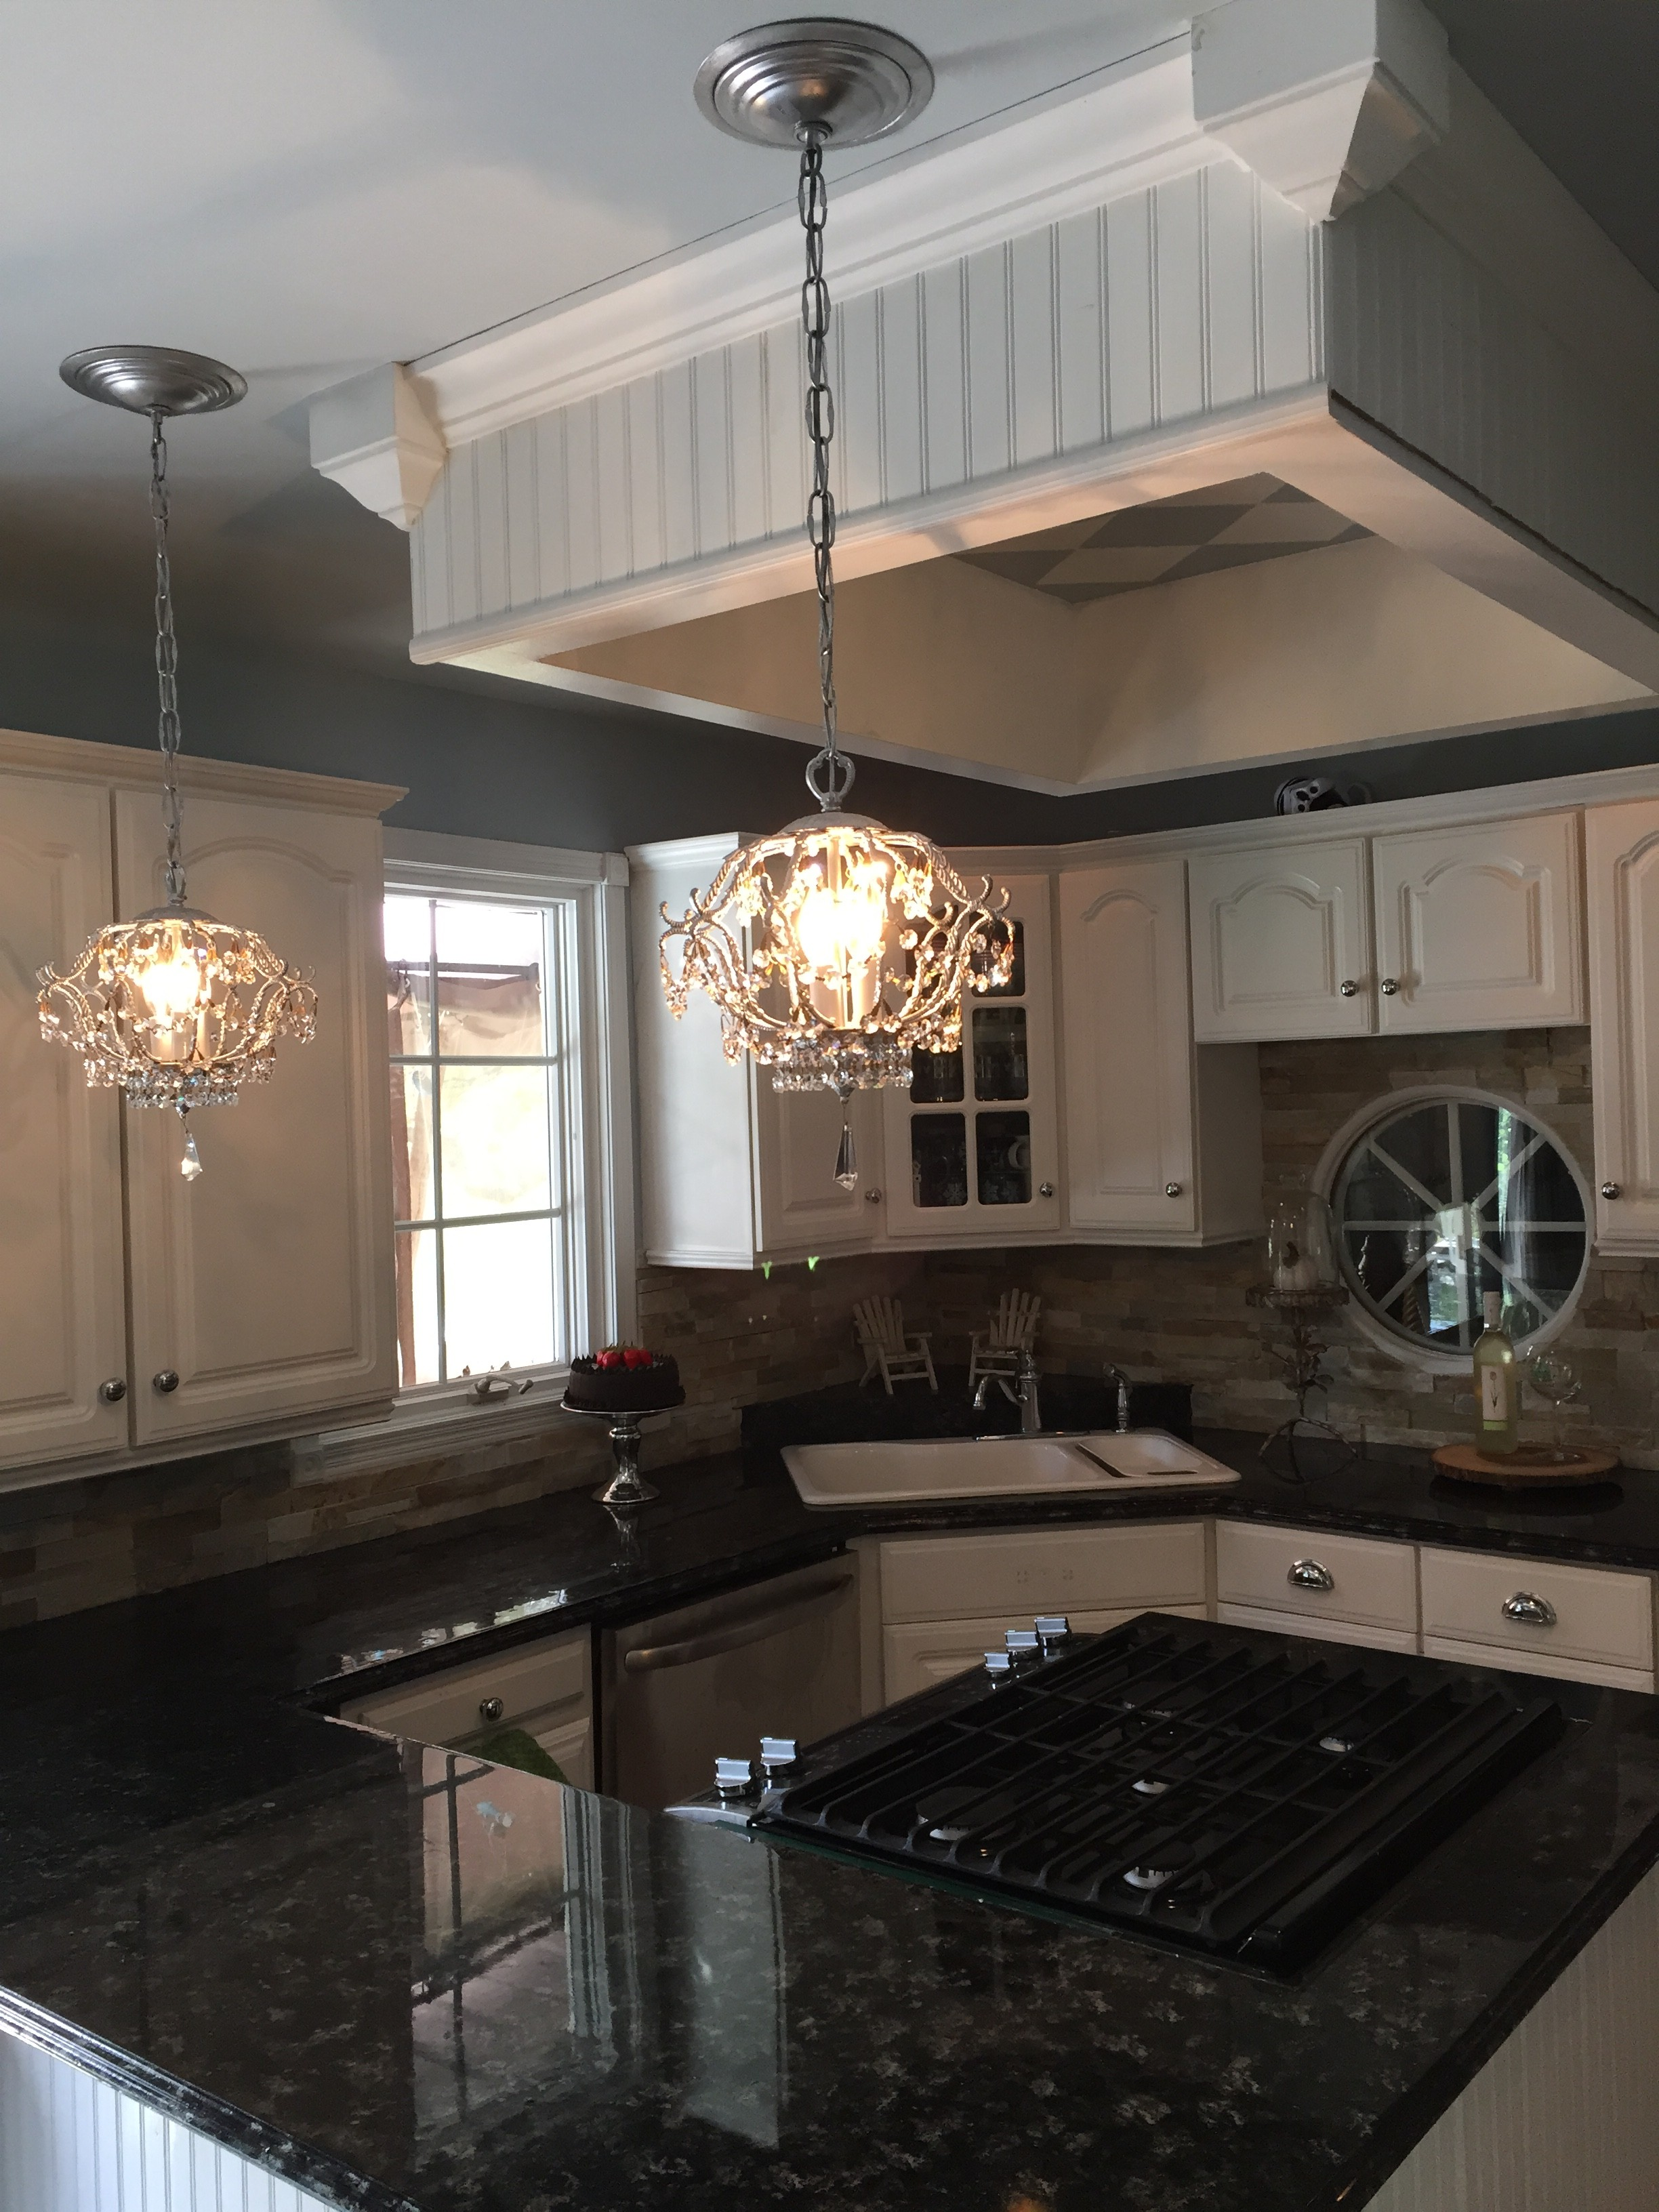 of cabinets remodeling sparkle kitchen white mesmerizing granite countertop also countertops marble pittsburgh with quartz